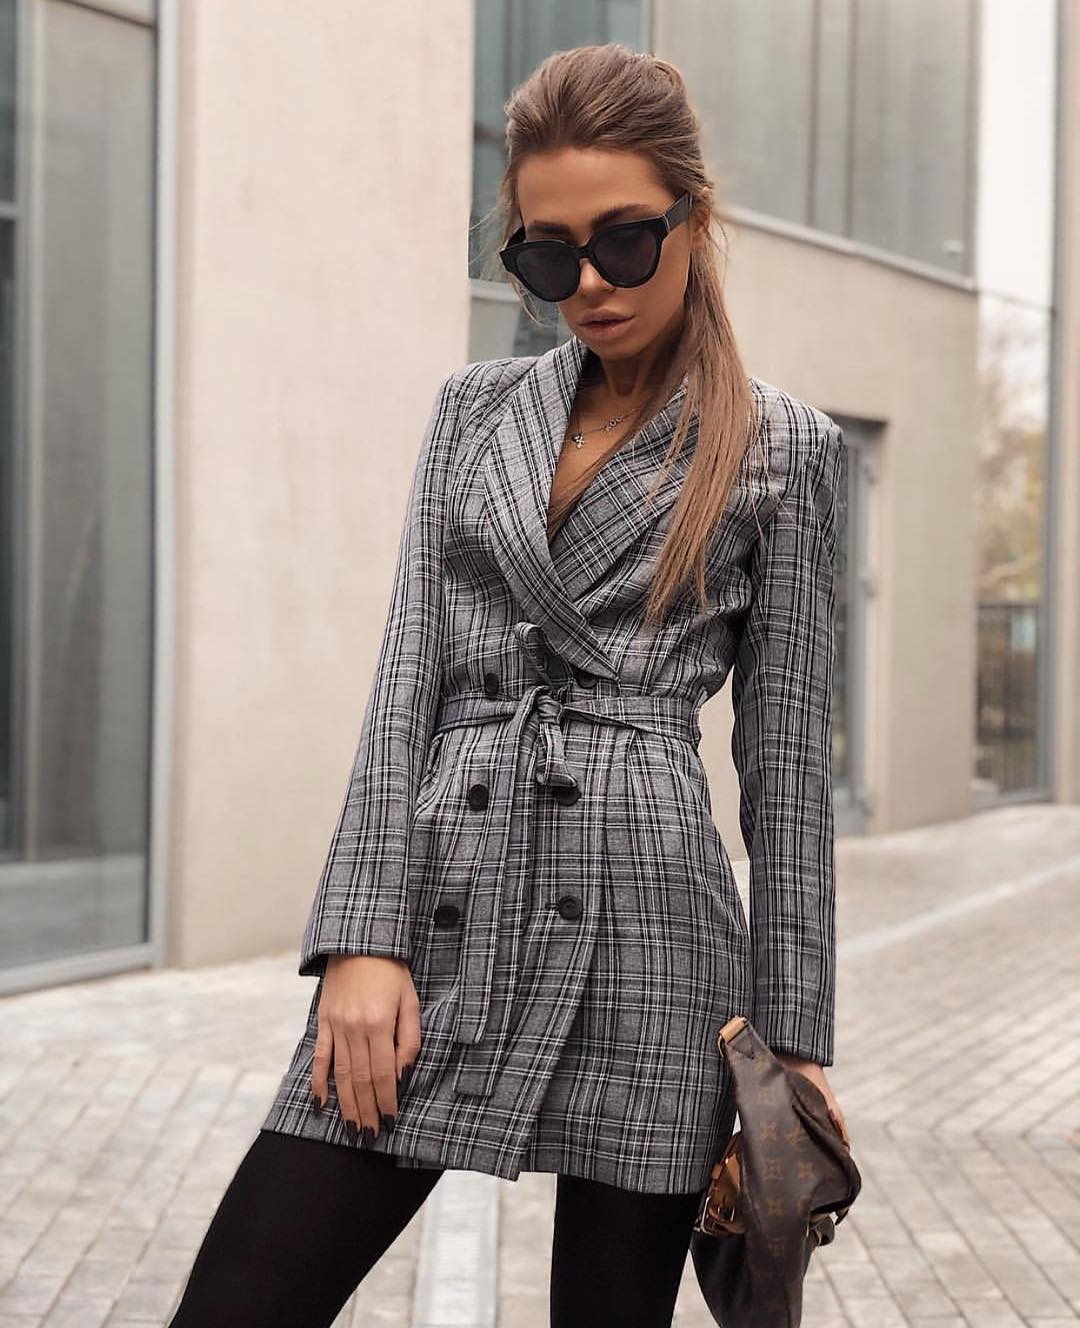 Grey Plaid Double-Breasted Coat And Black Tights For Fall 2019